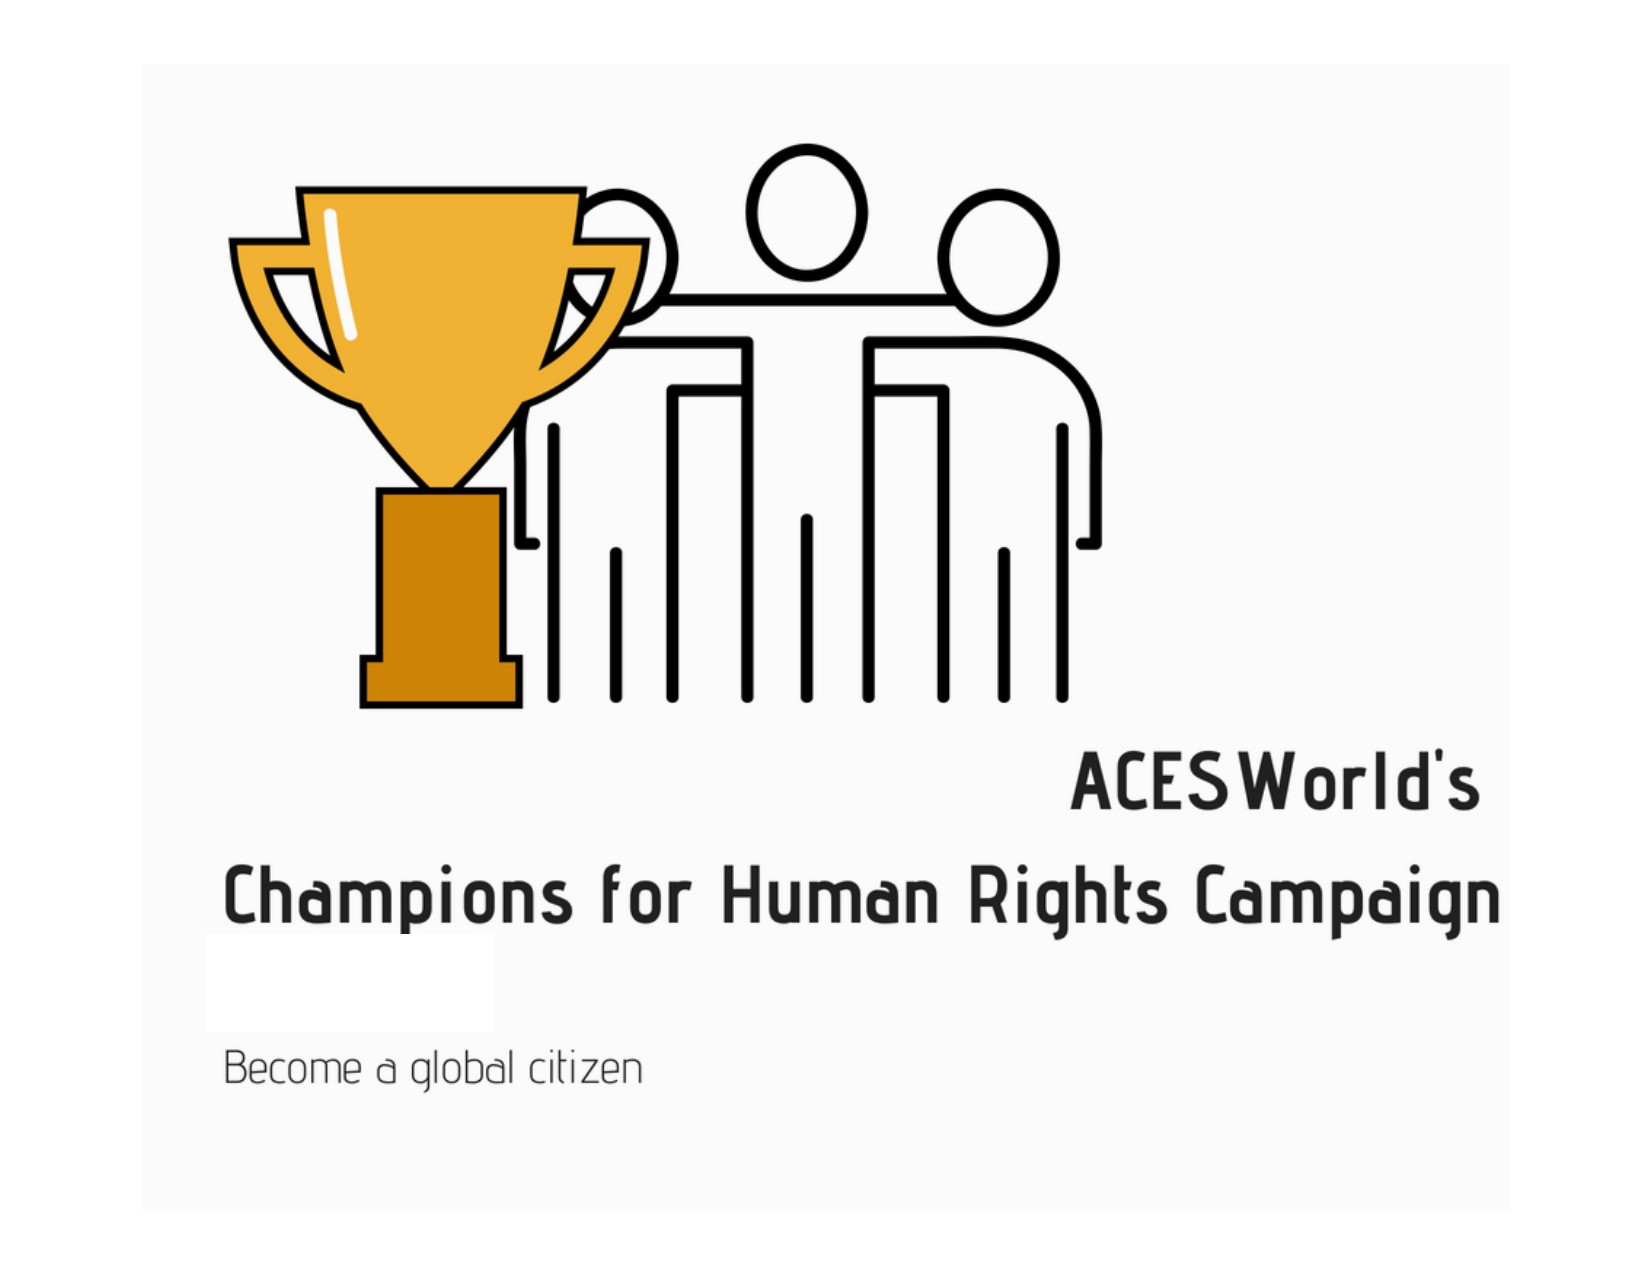 - Champions for Human Rights is a fundraising initiative that puts the power to help women and girls into your hands.Step 1: Register below as a Champion who cares about women's and girl's rights. You can work as an individual, join a team or form a team.Step 2: We email a Champions Toolkit and a code to setup your Champion pageStep 3: Recruit more Champions and have them signup here.      Step 4: Find sponsors who will pledge per video made and have them make their pledge on your Champion page.                           Step 5: Find participants to record human rights video and post on social media.